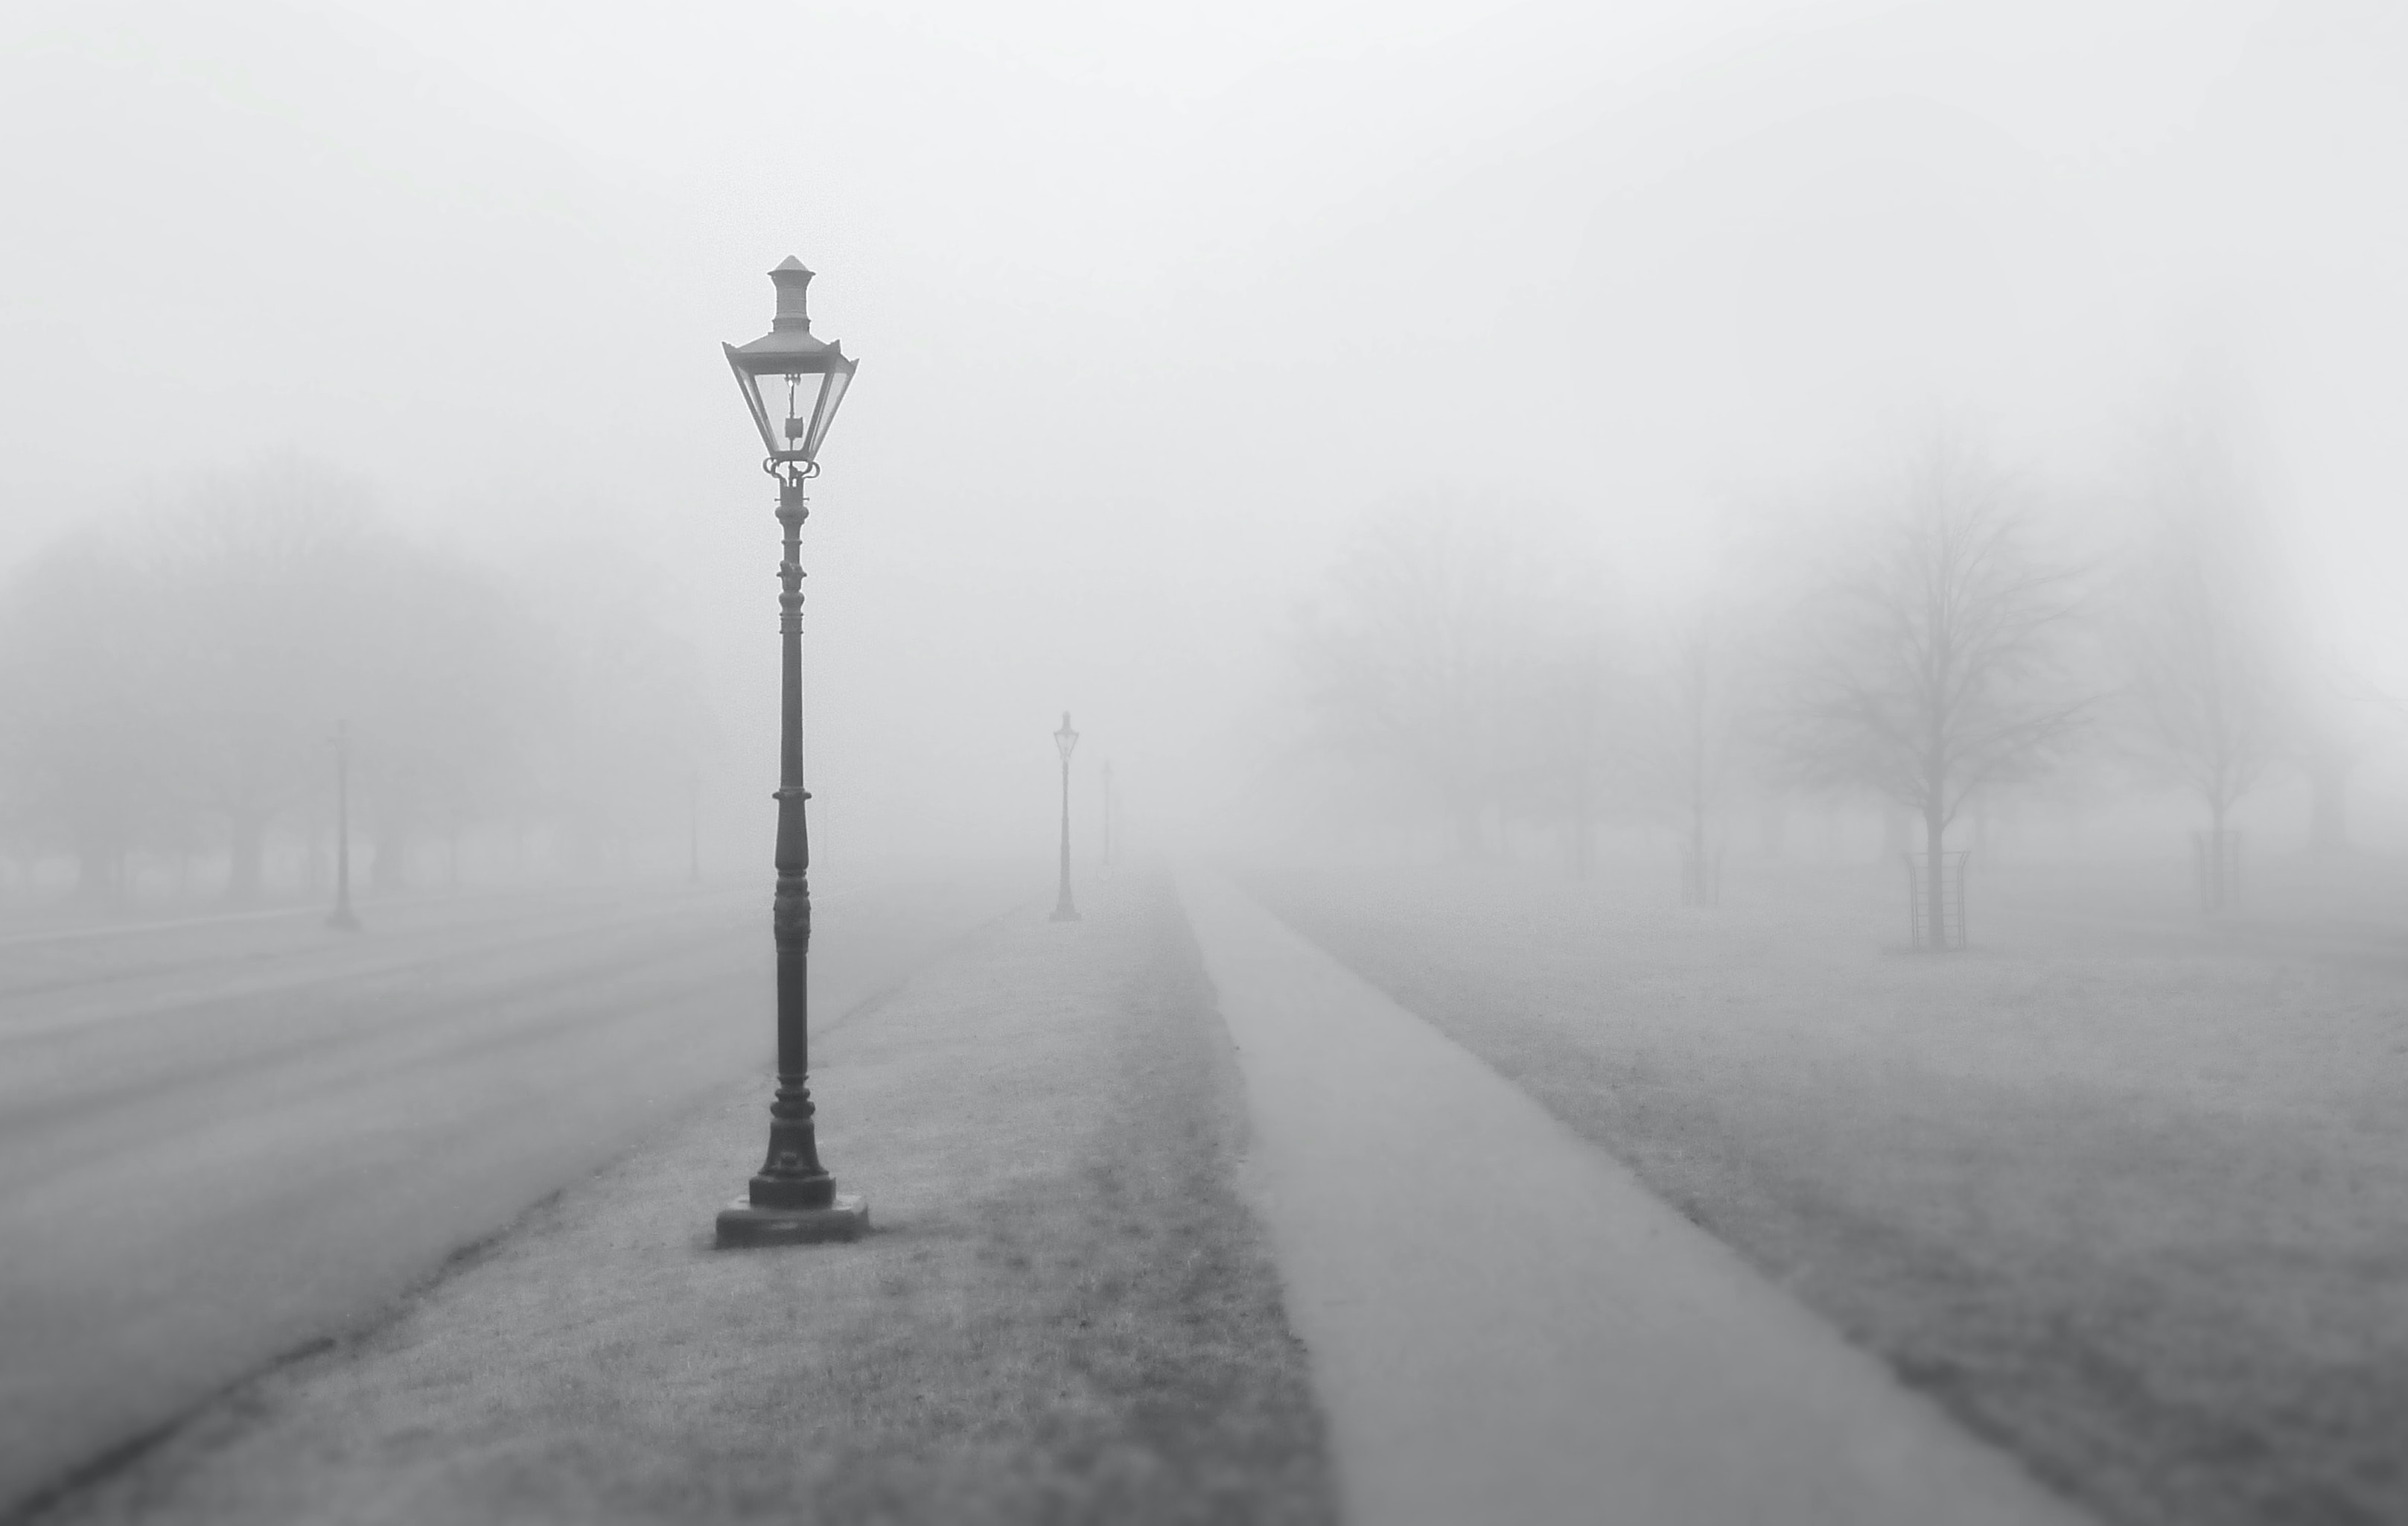 Foggy view of a walking path and streetlight in the winter